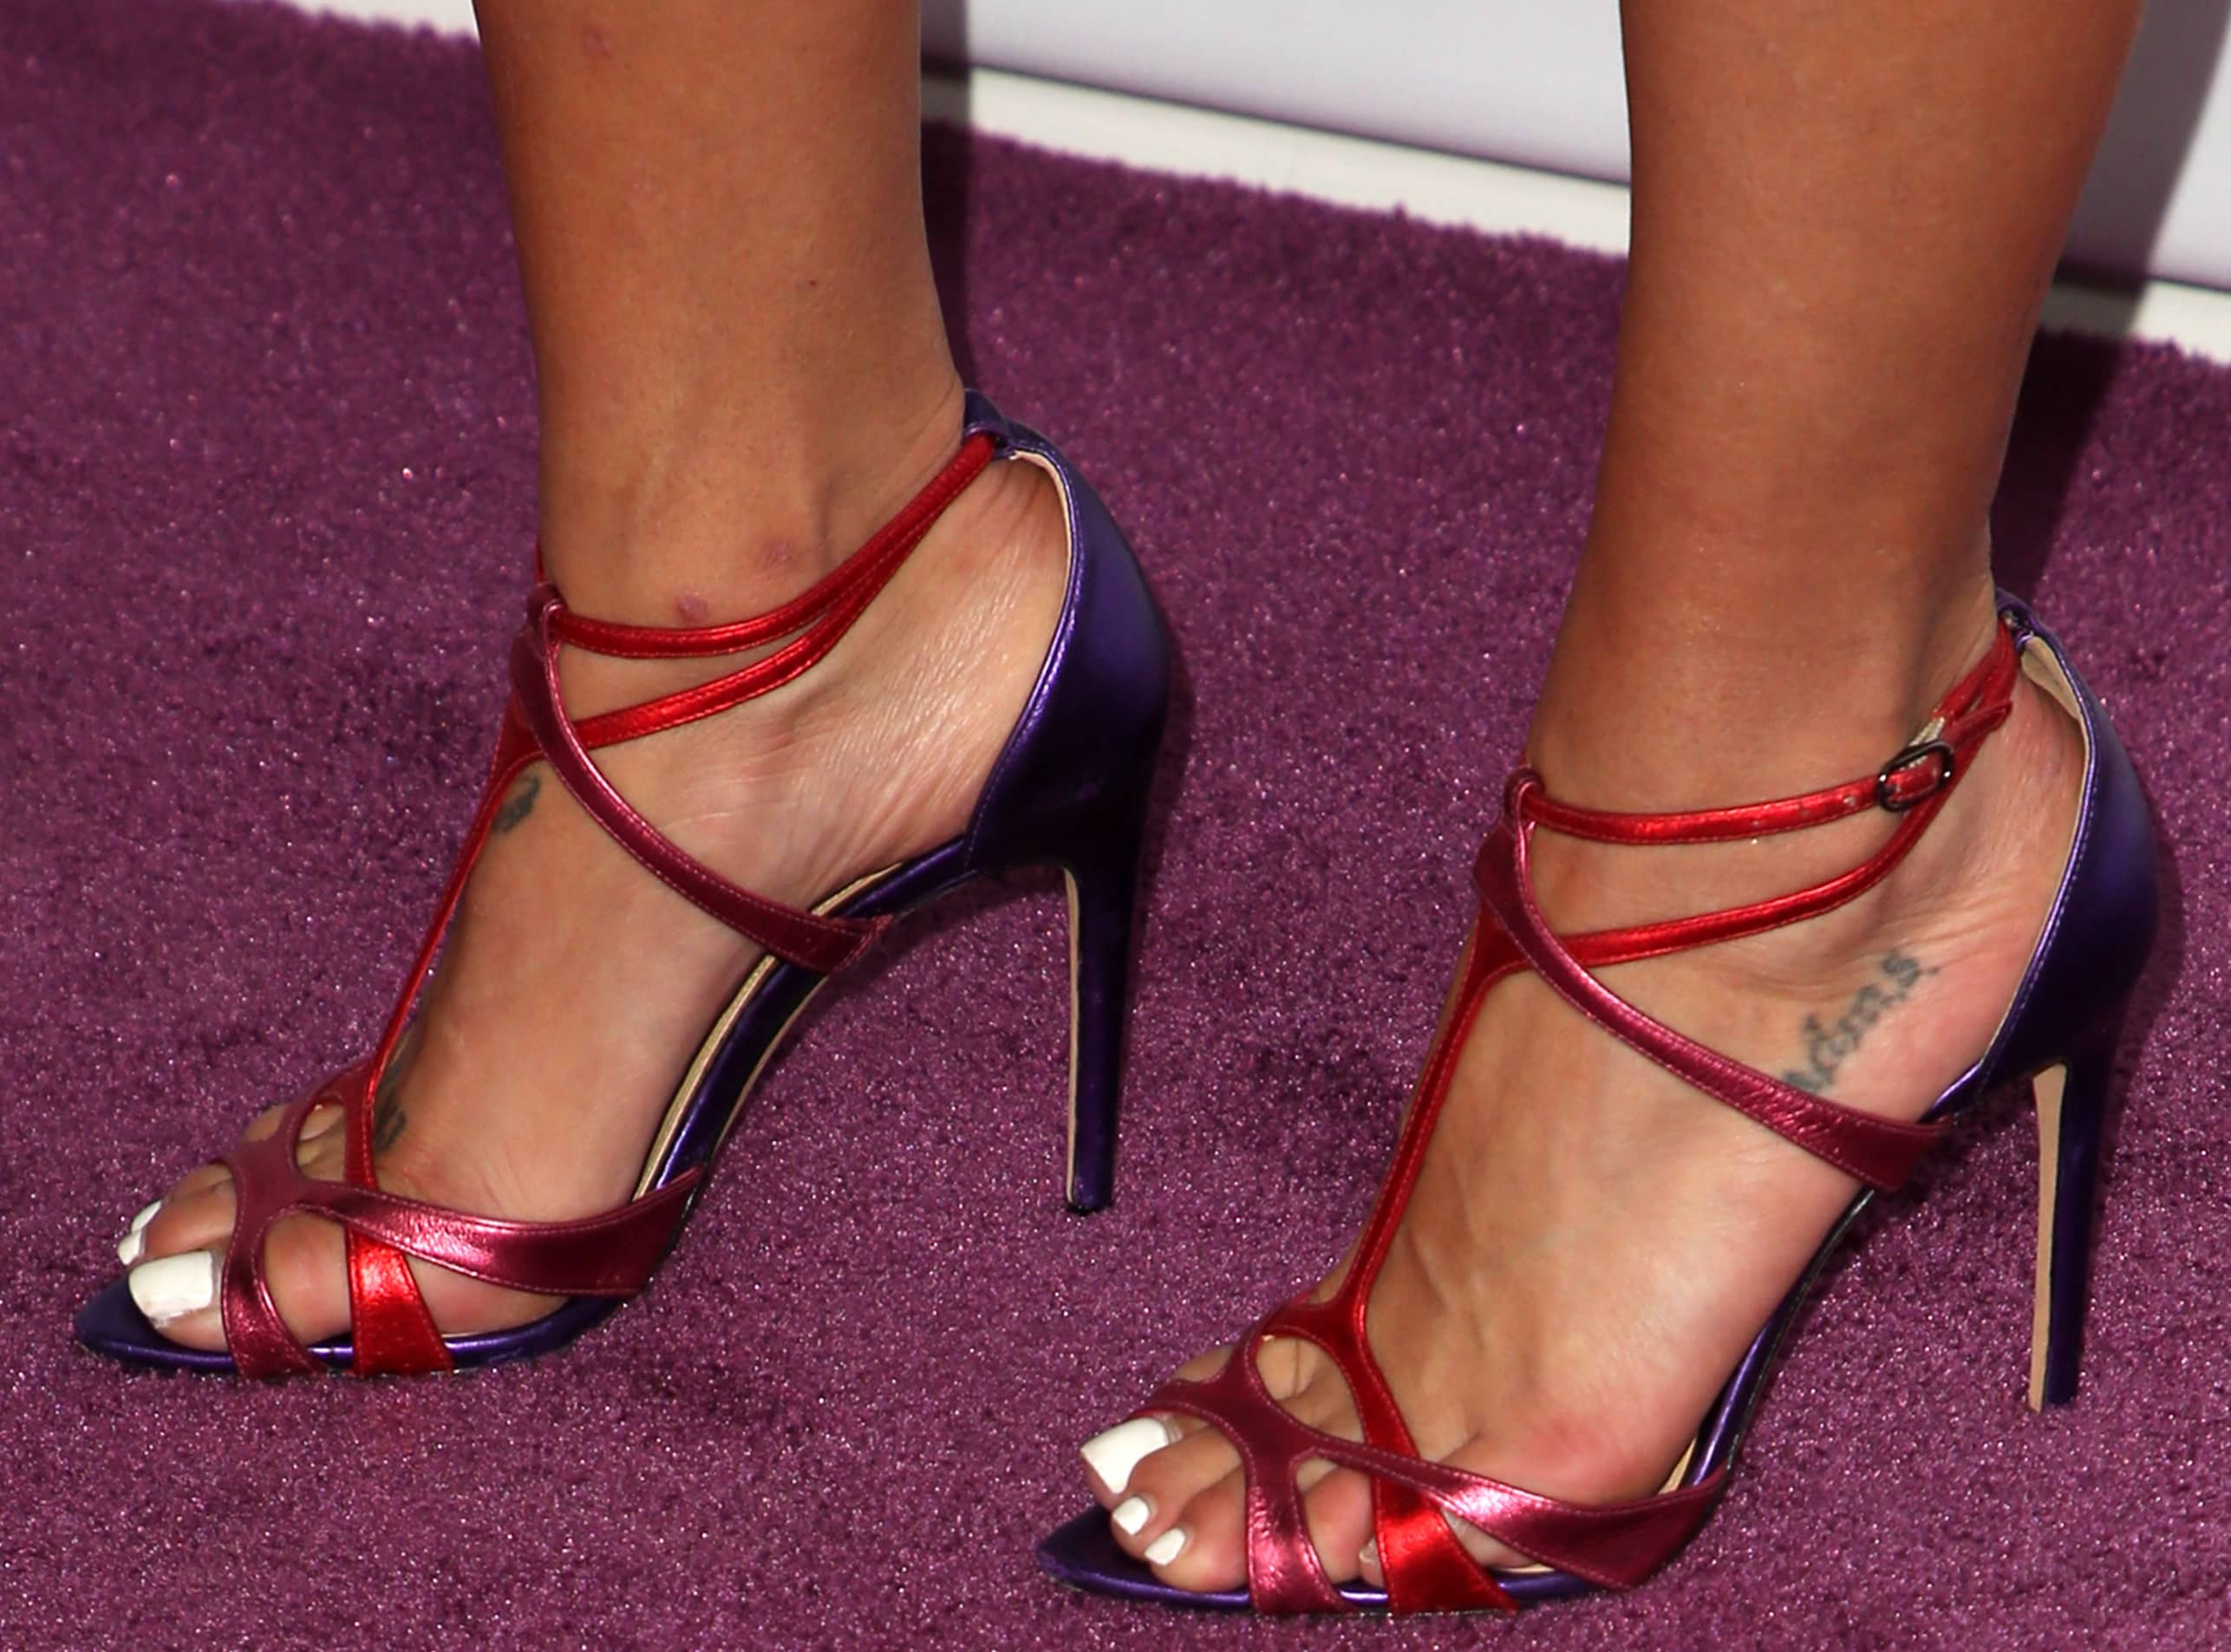 Jessica Szohr's naked feet with mysterious tattoos